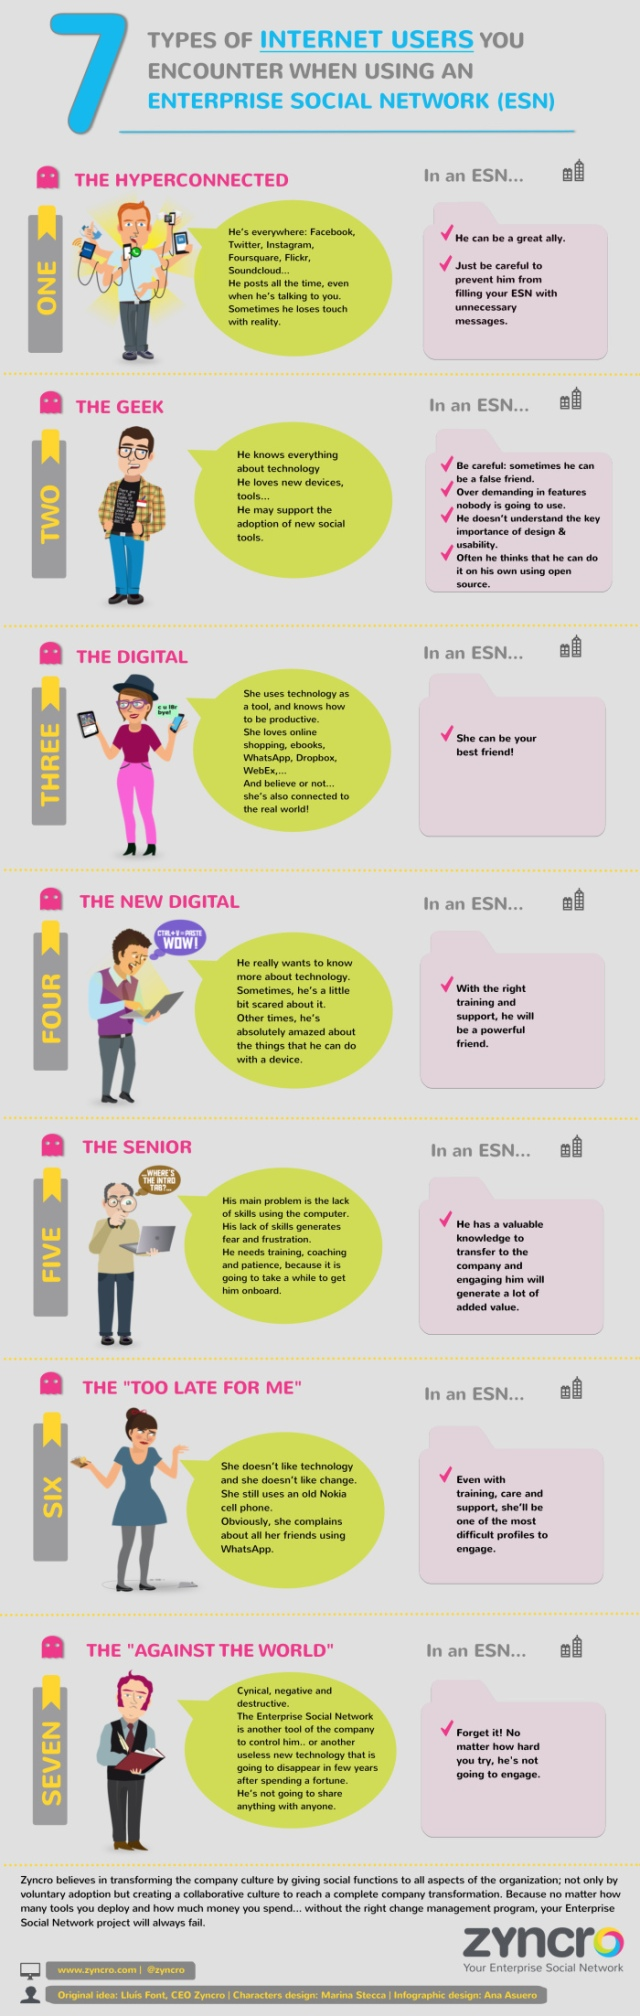 7 types of internet user you encounter when using an ESN